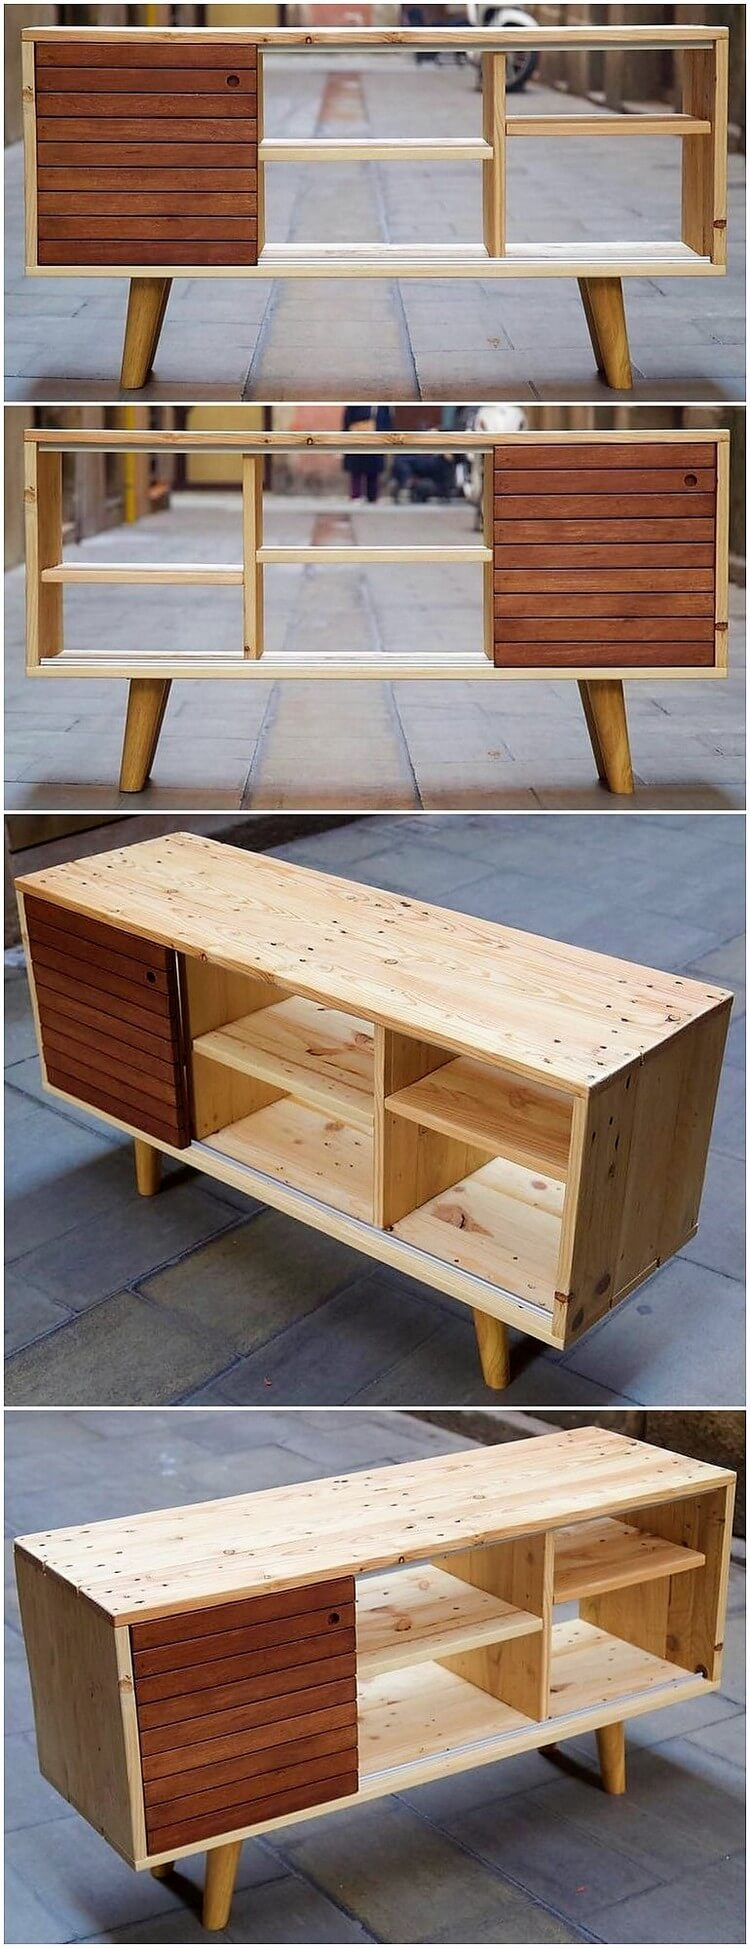 Pallet Shelving Table or Cabinet